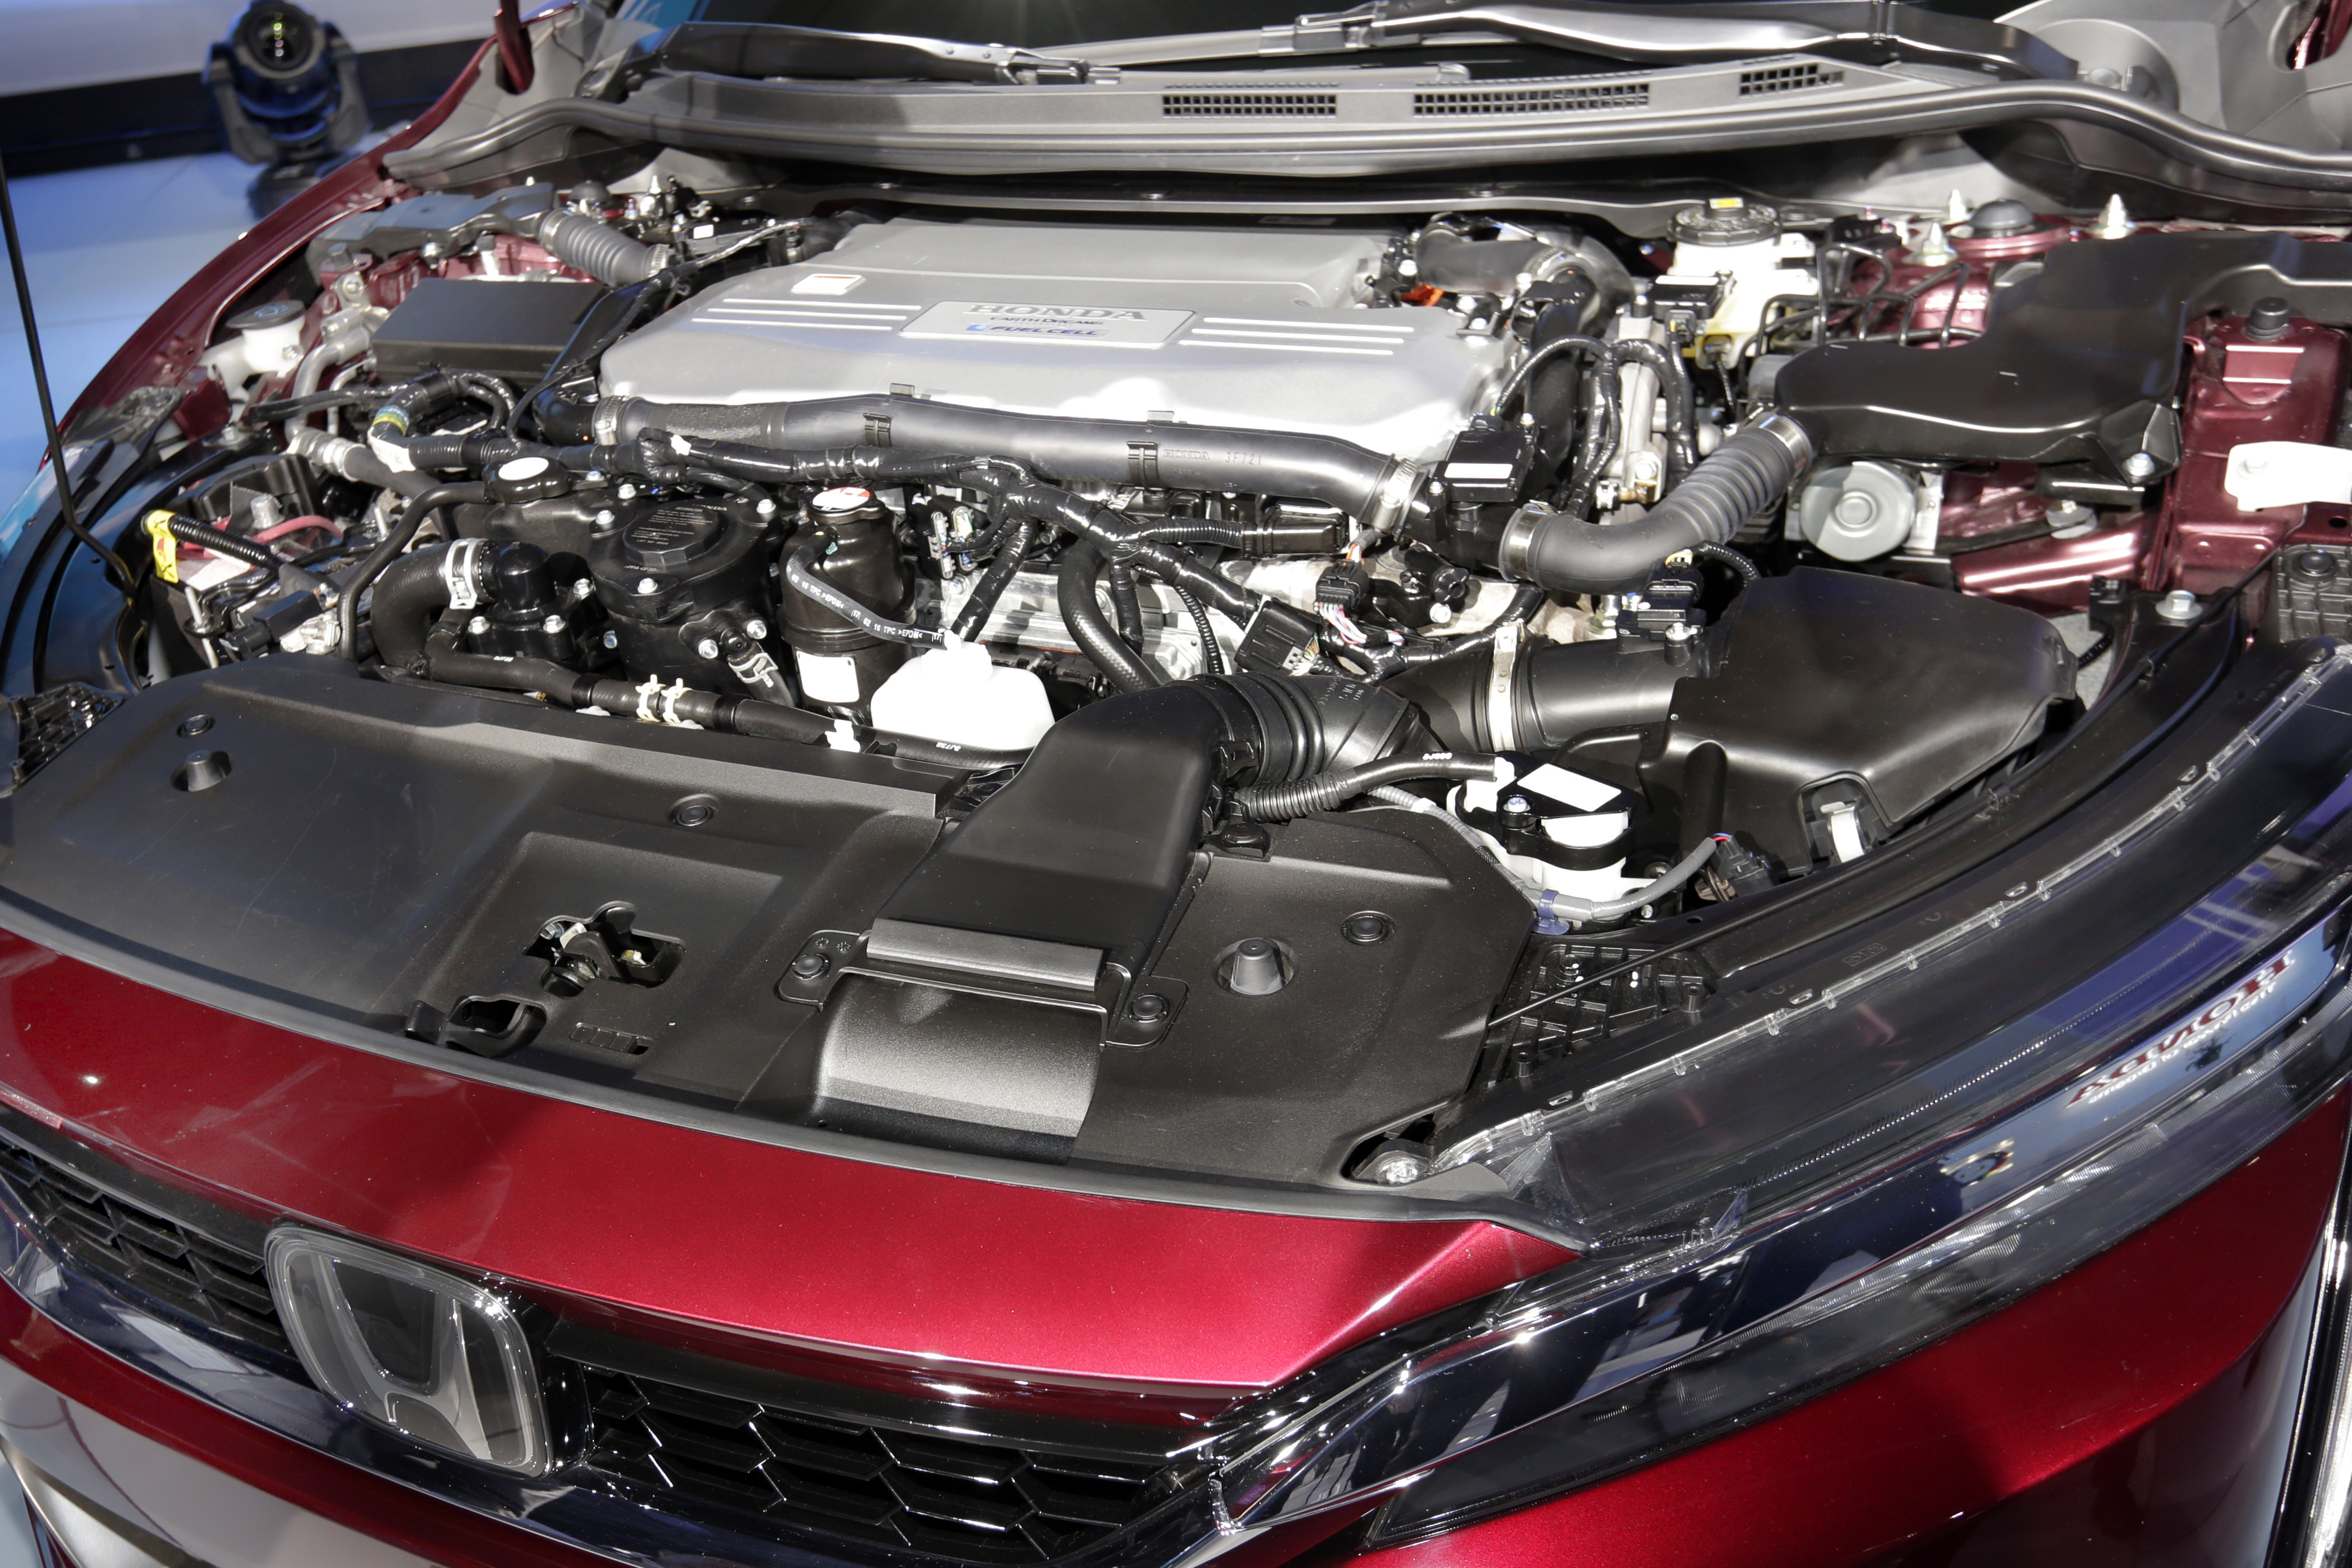 Auto Show Honda The fuel cell engine of the Honda Clarity is shown during a media preview at the New York International Auto Show, at the Jacob Javits Center in New York, Wednesday, April 12, 2017. (AP Photo/Richard Drew)